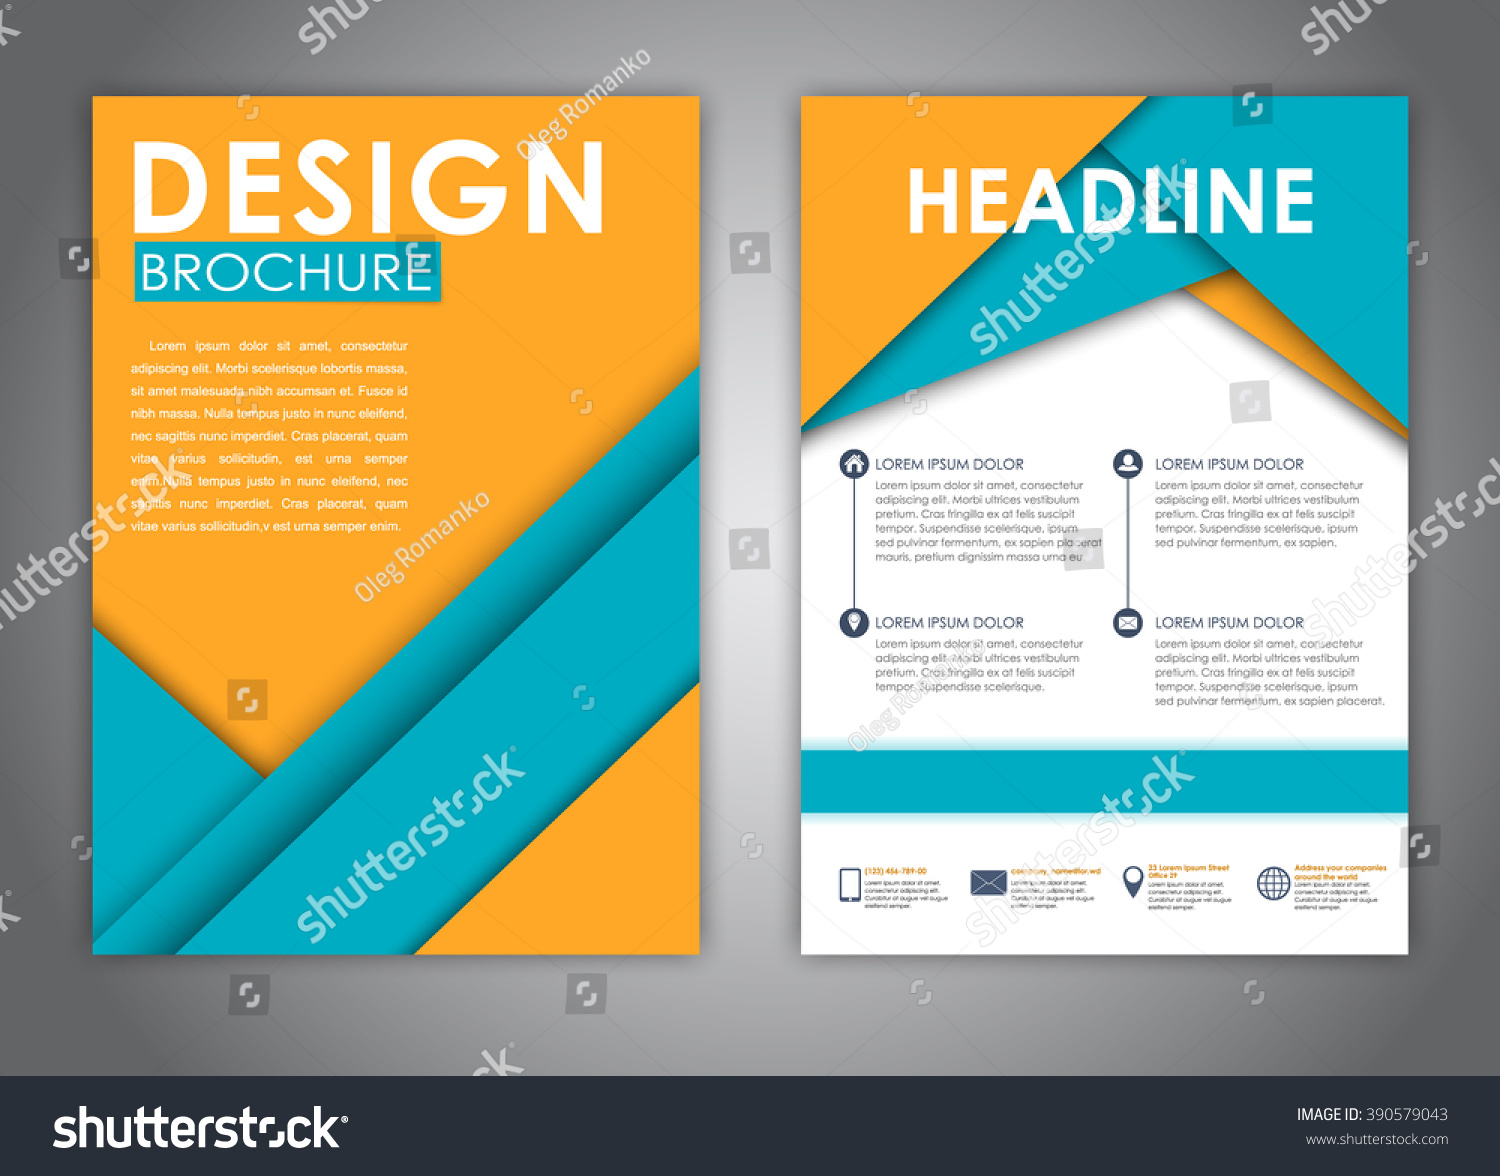 template flyer brochure report print advertising stock vector template flyer brochure report and print advertising material design sheets of yellow